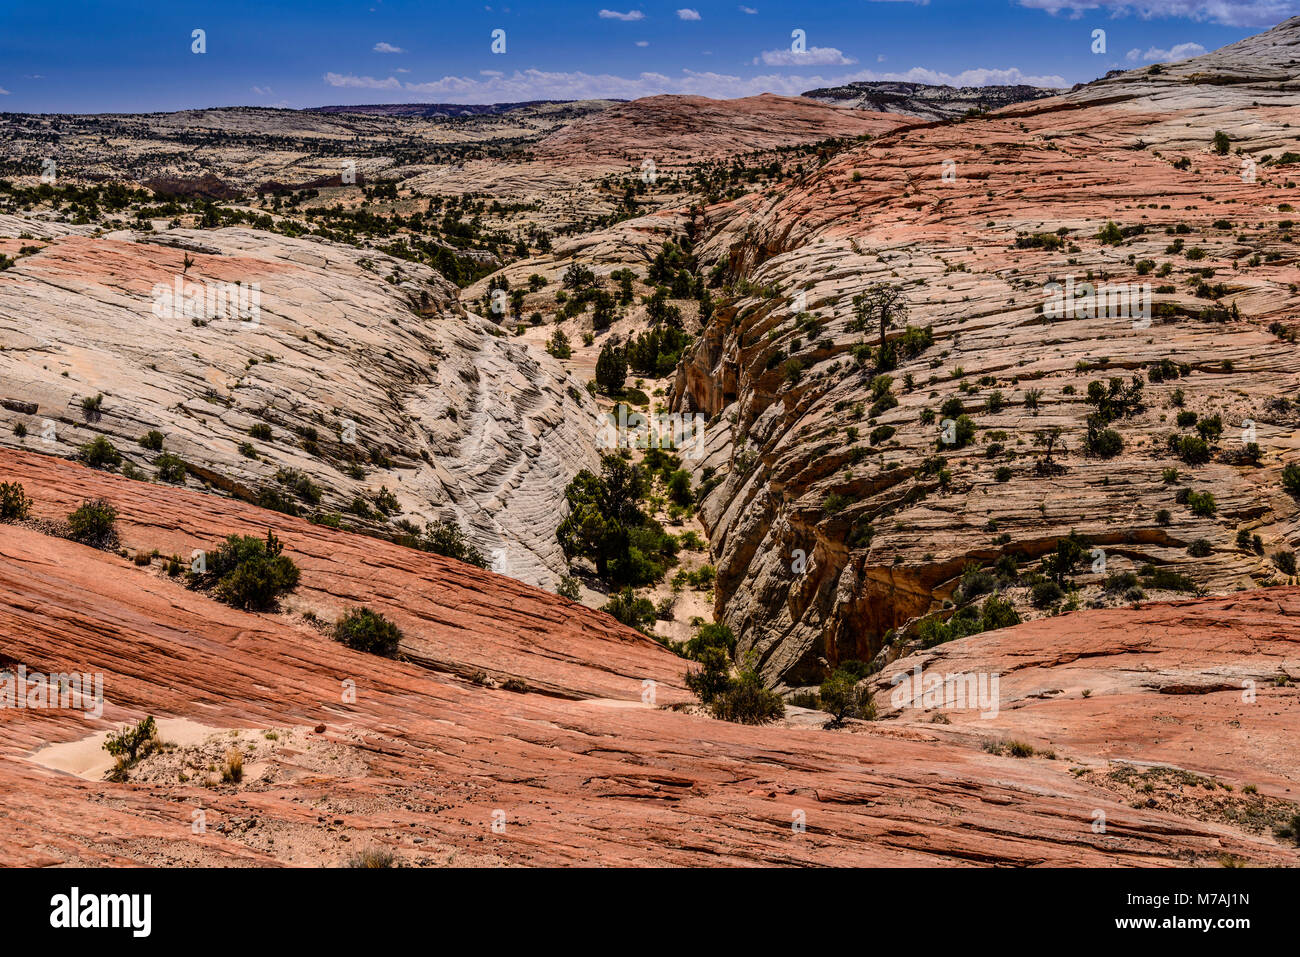 The USA, Utah, Garfield County, Grand Staircase-Escalante National Monument, Escalante, scenery in the Scenic Byway Stock Photo